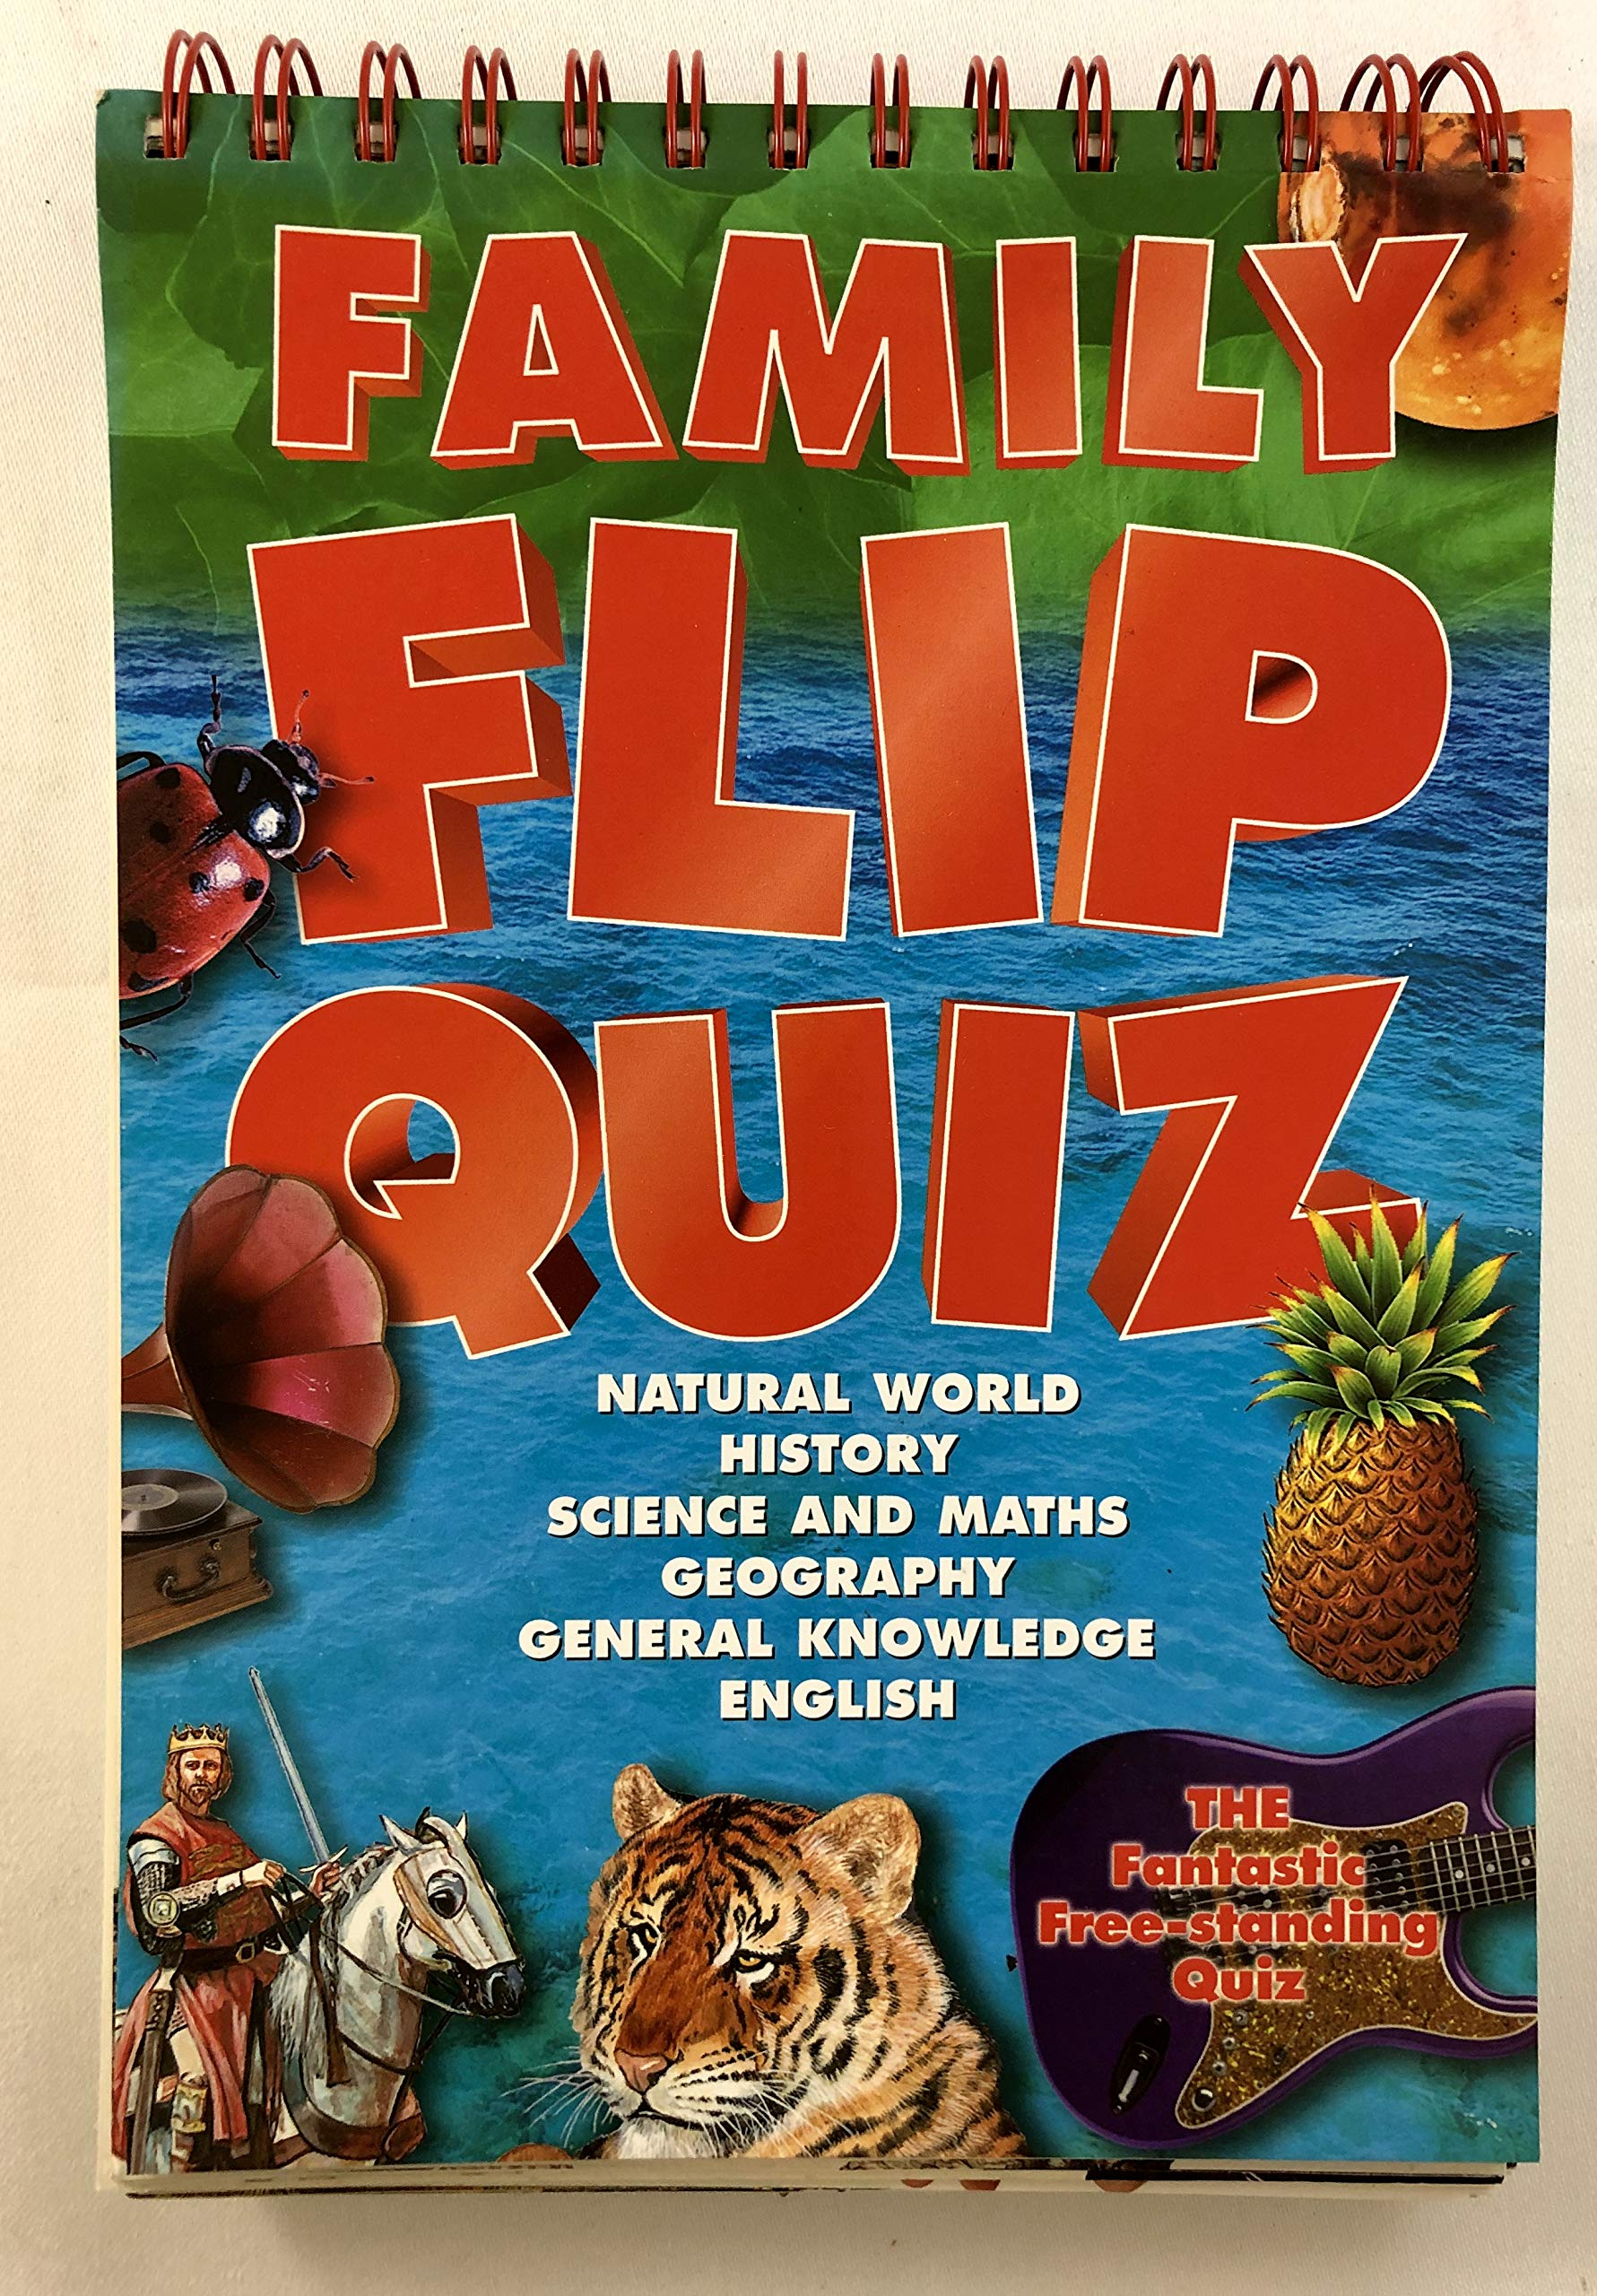 Family Flip Quiz - Natural World, History, Science and Maths